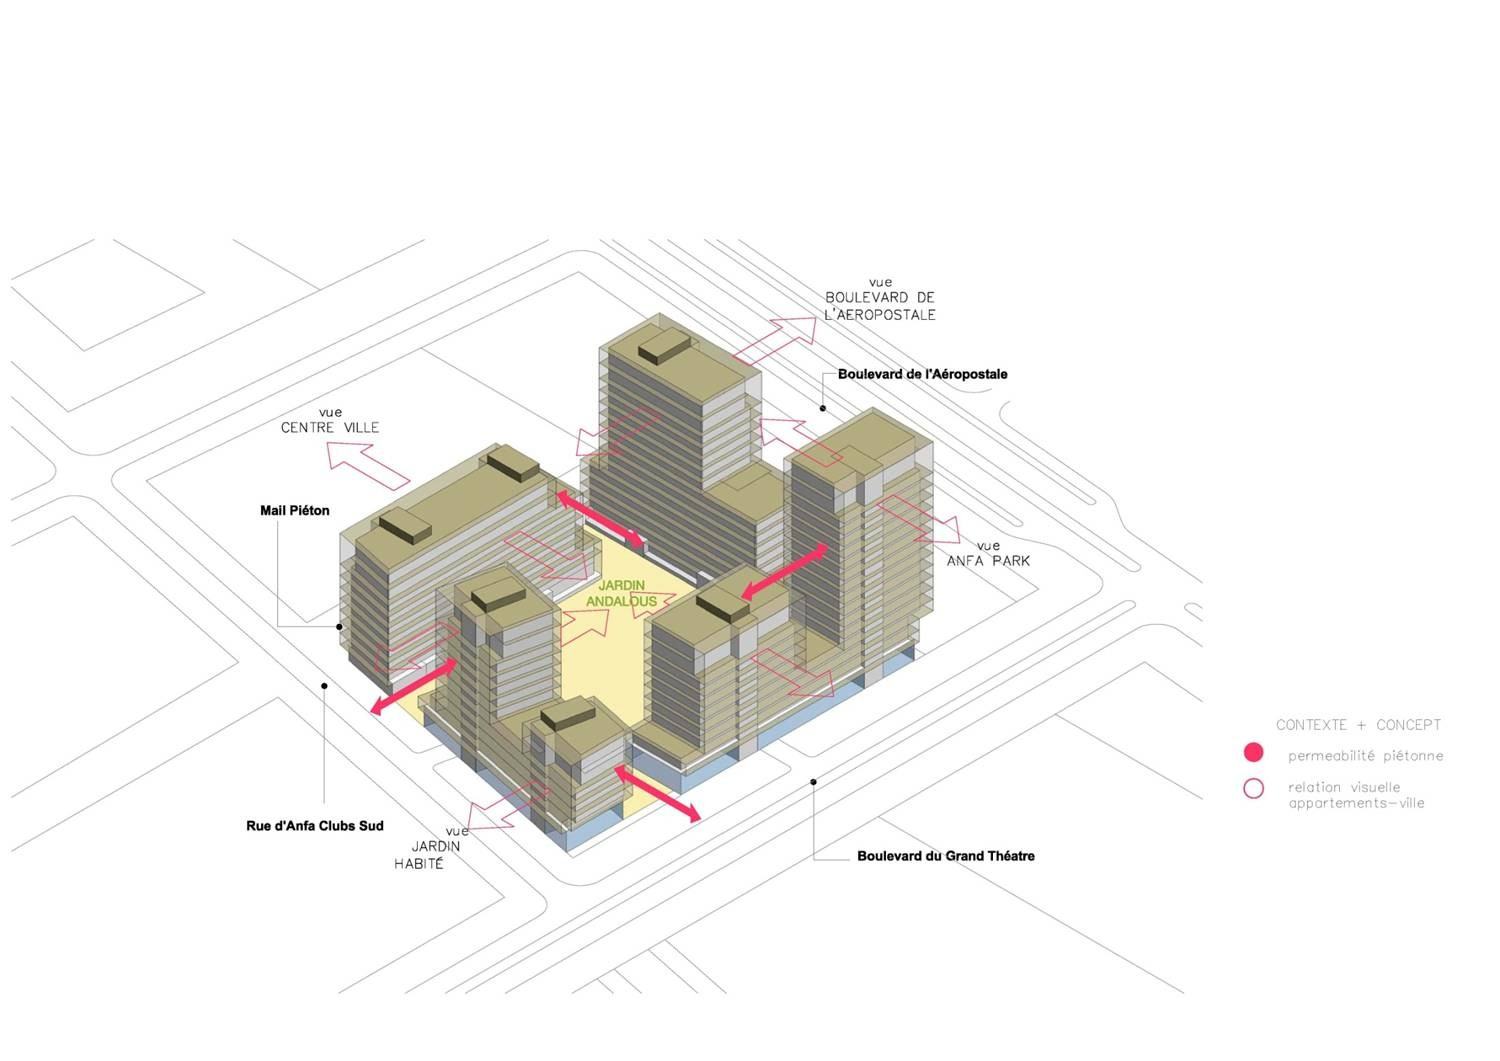 hight resolution of casablaca anfa herreros arquitectos proposal for a mixed use building in morocco